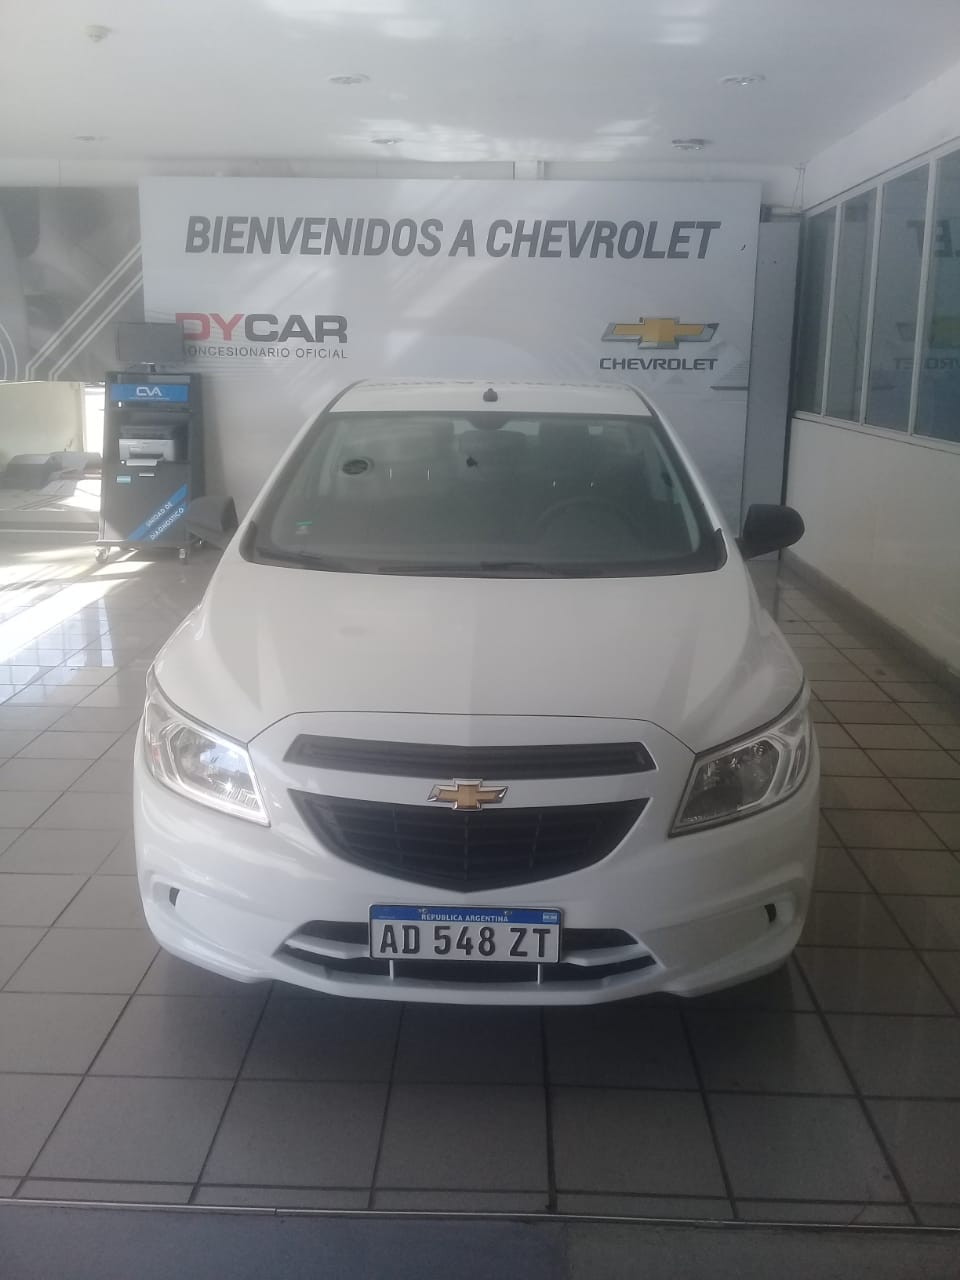 2019 CHEVROLET PRISMA JOY LS 1,4L